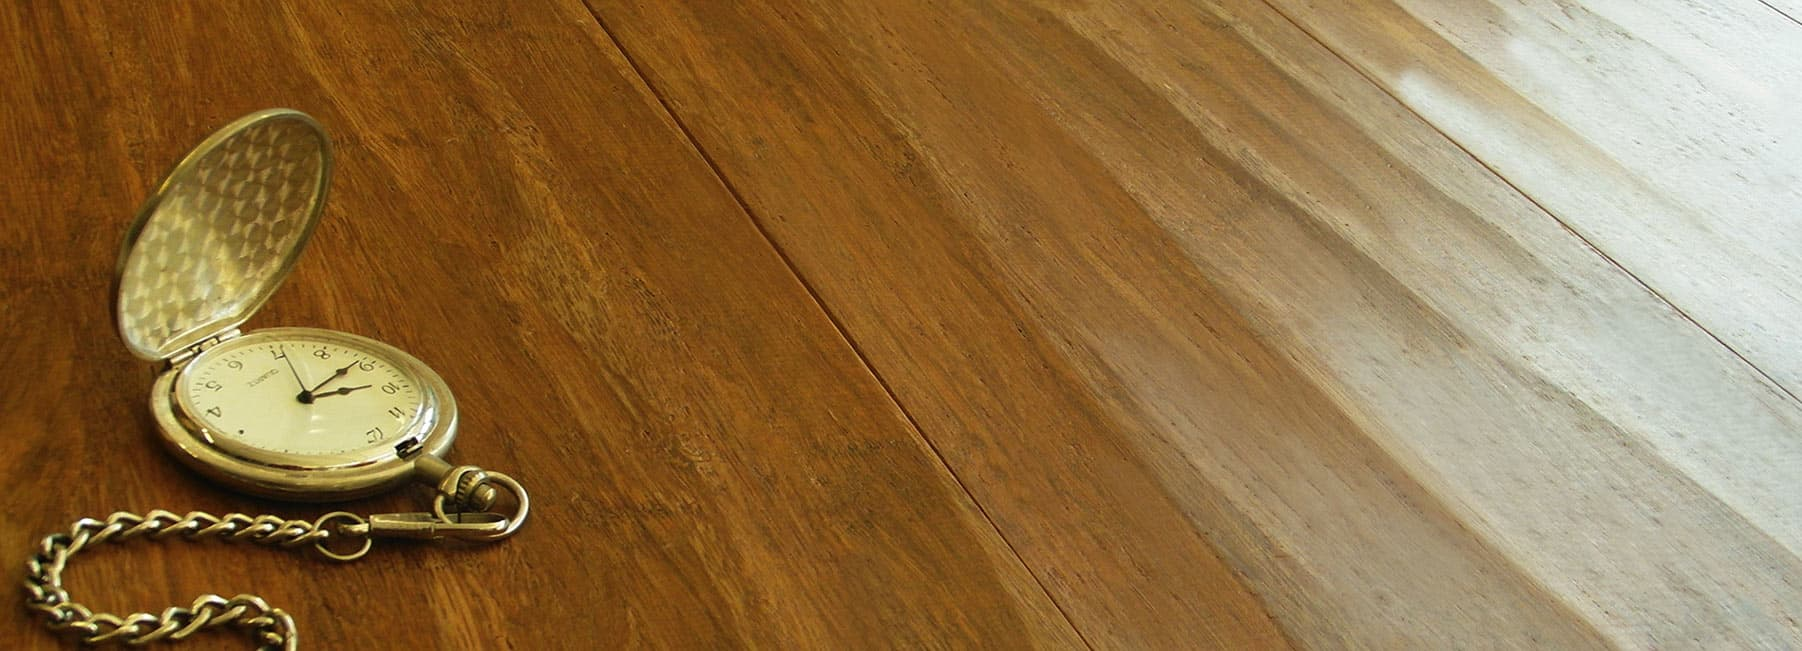 Bamboo Floor Emissions Pictures